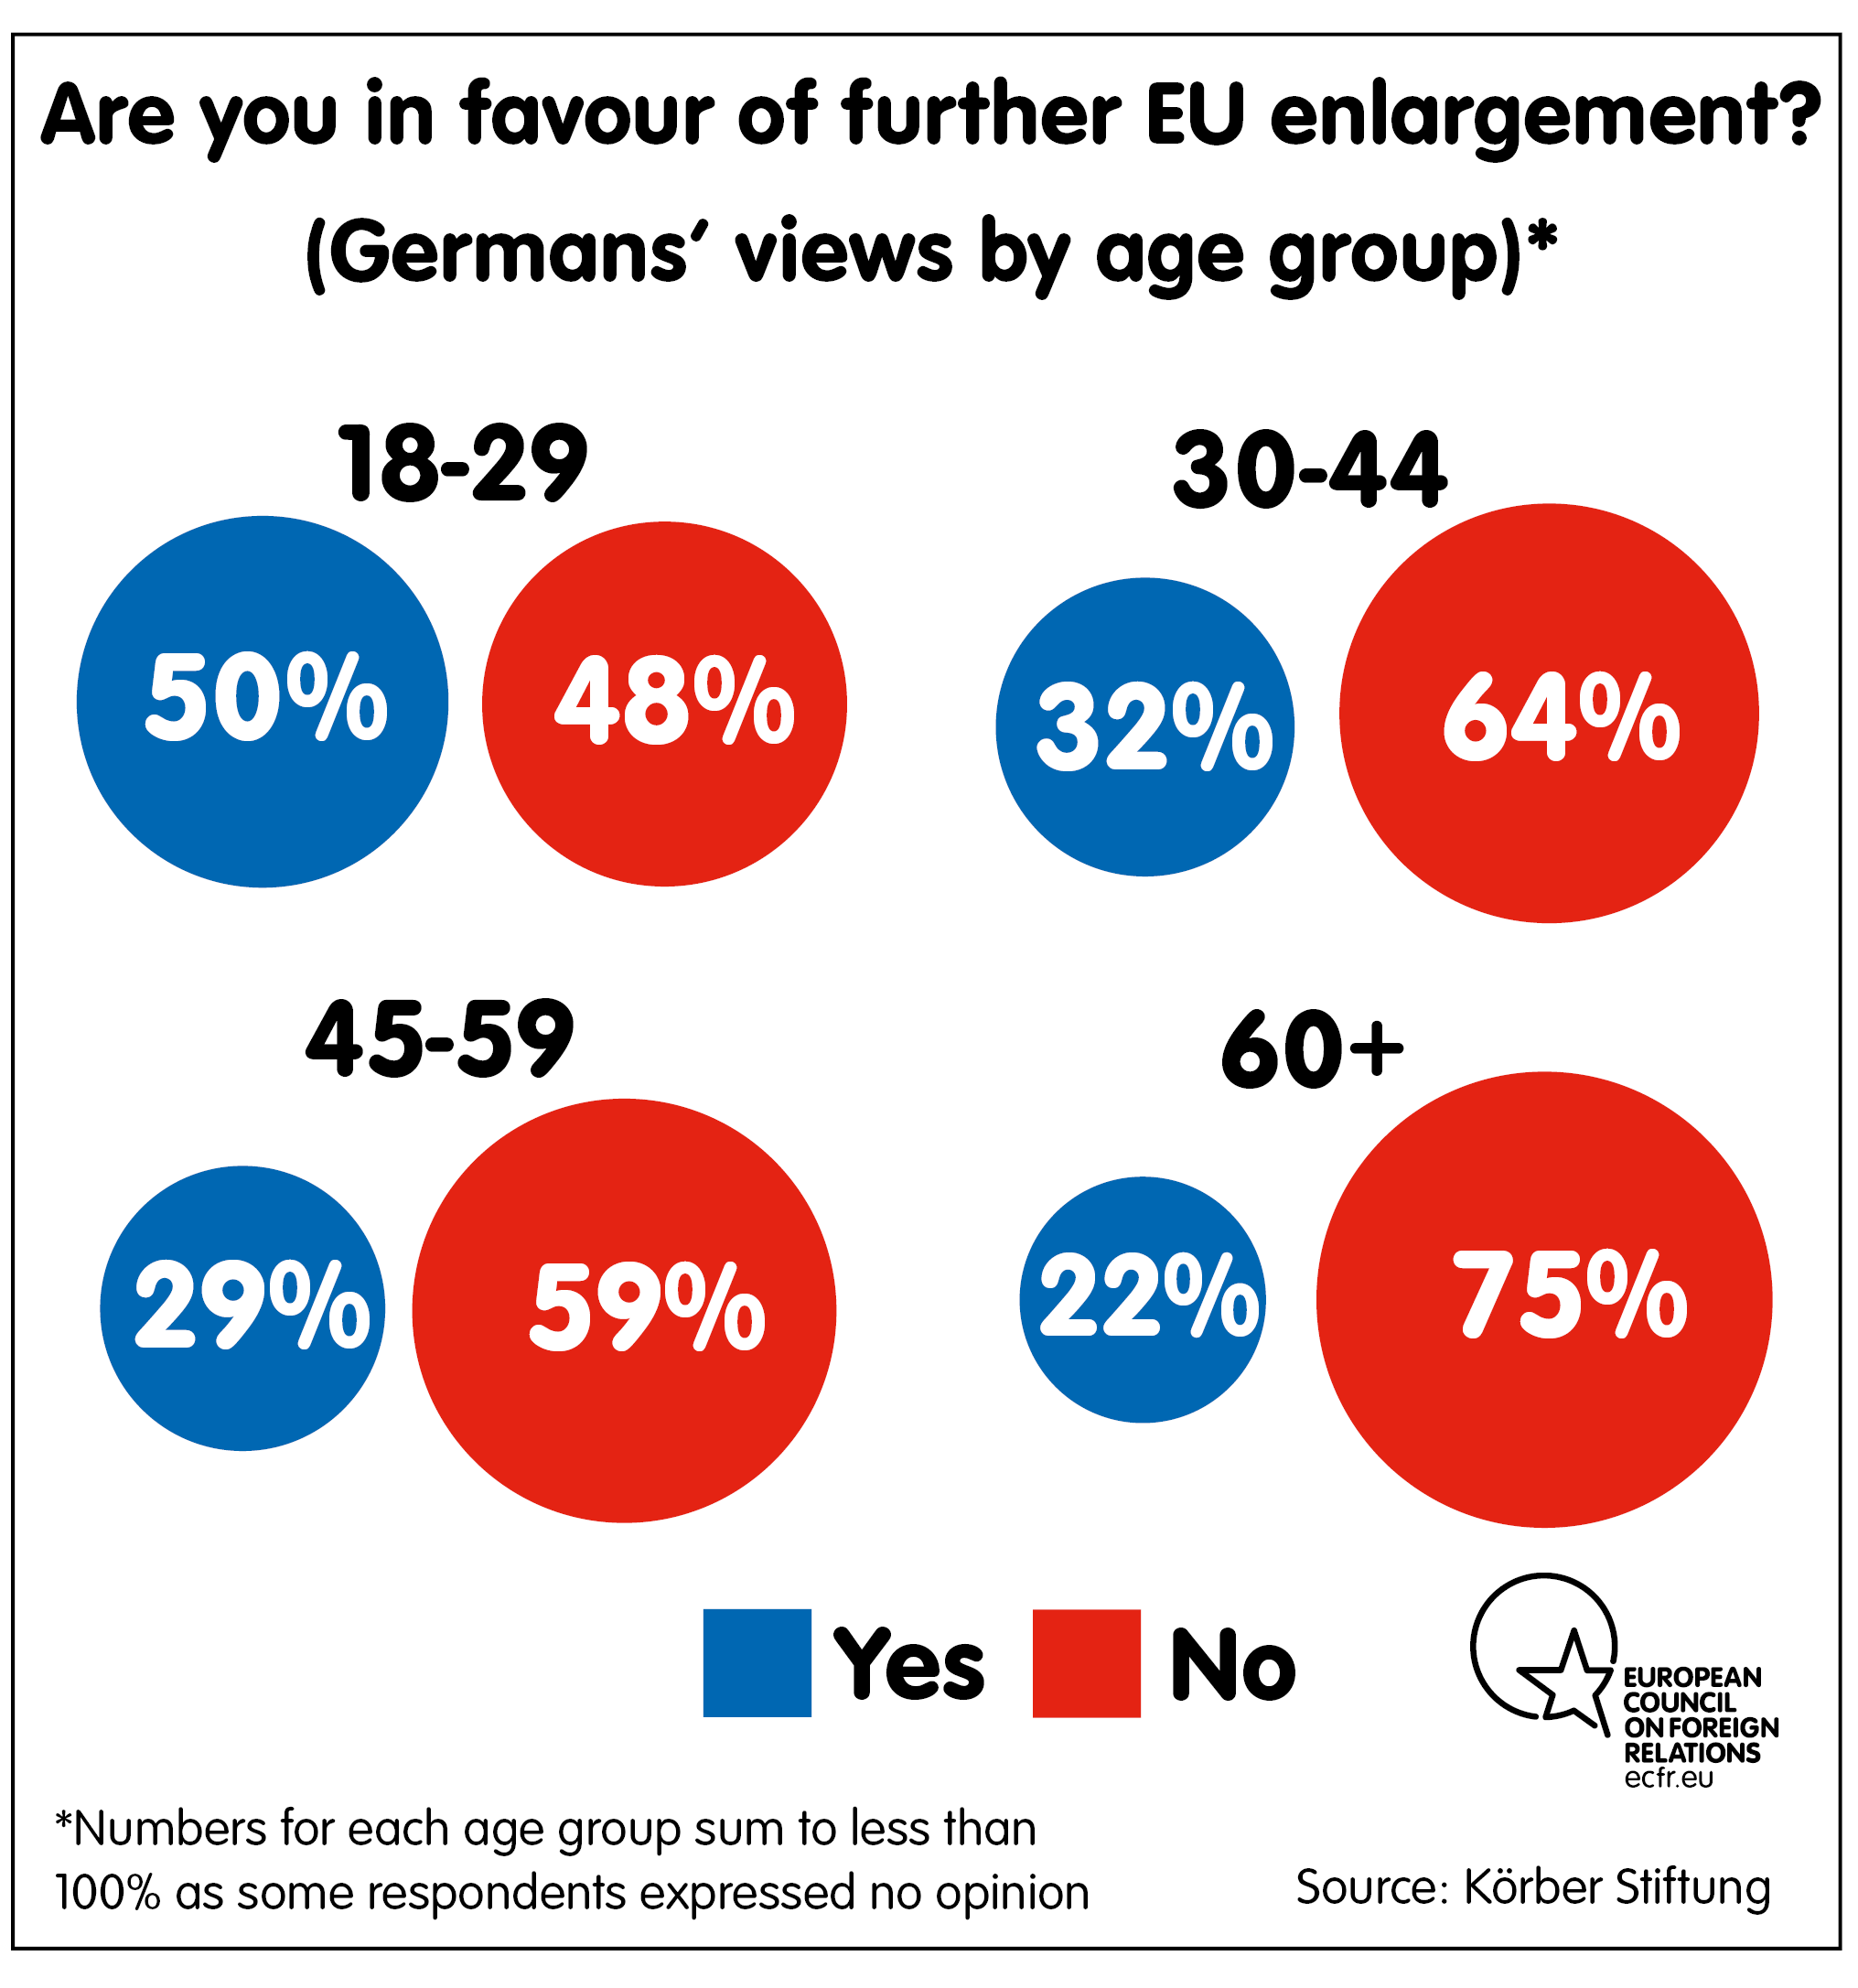 In favour of EU enlargment?